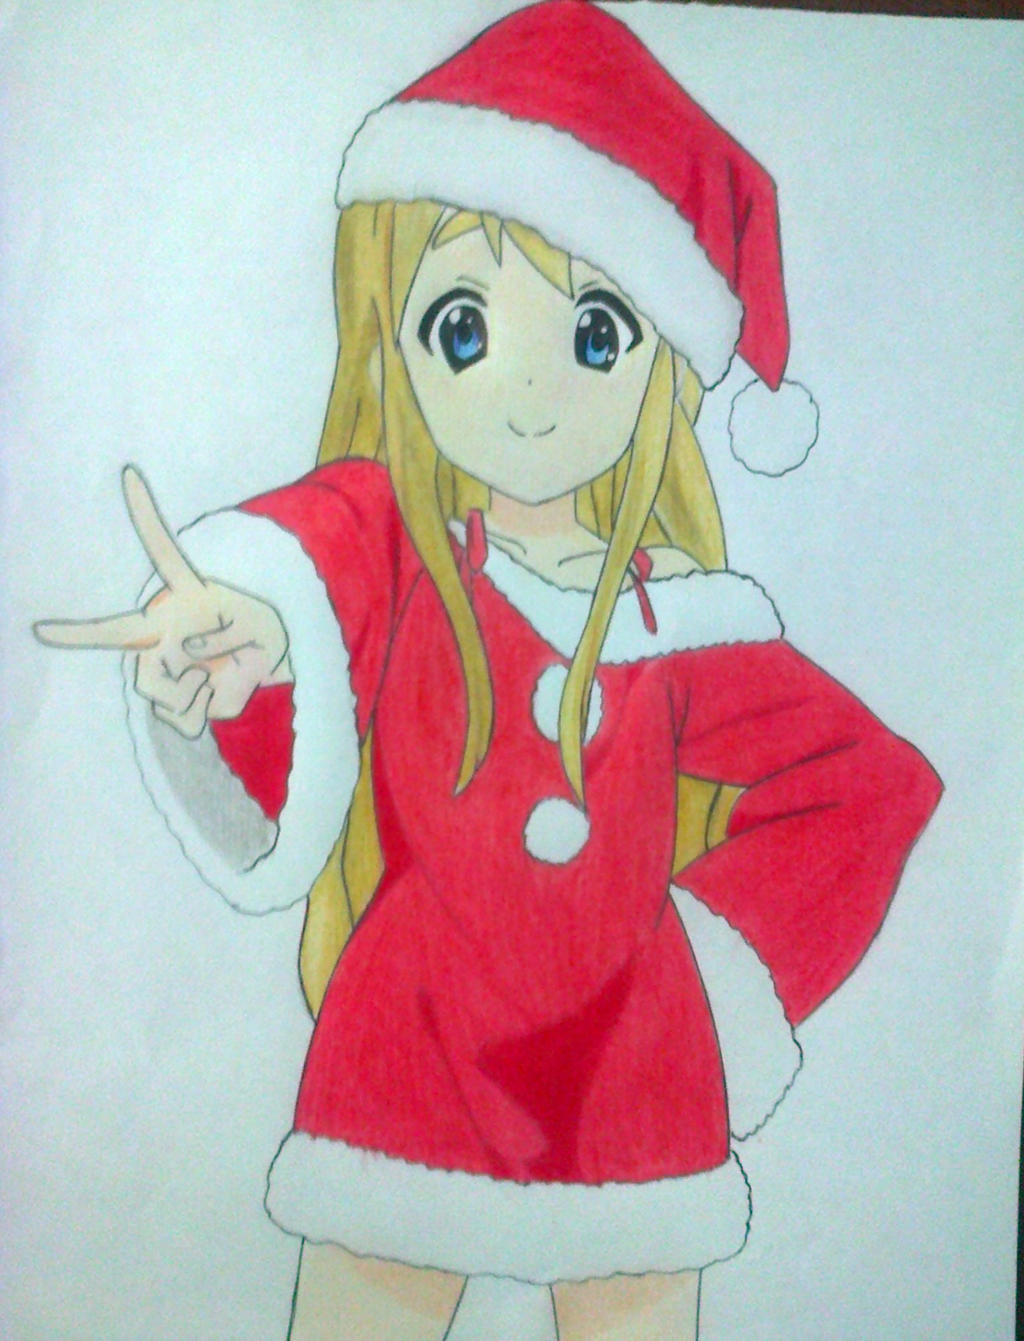 Tsumugi Kotobuki Merry Christmas Fan Art Draw By EvilCaio On DeviantArt